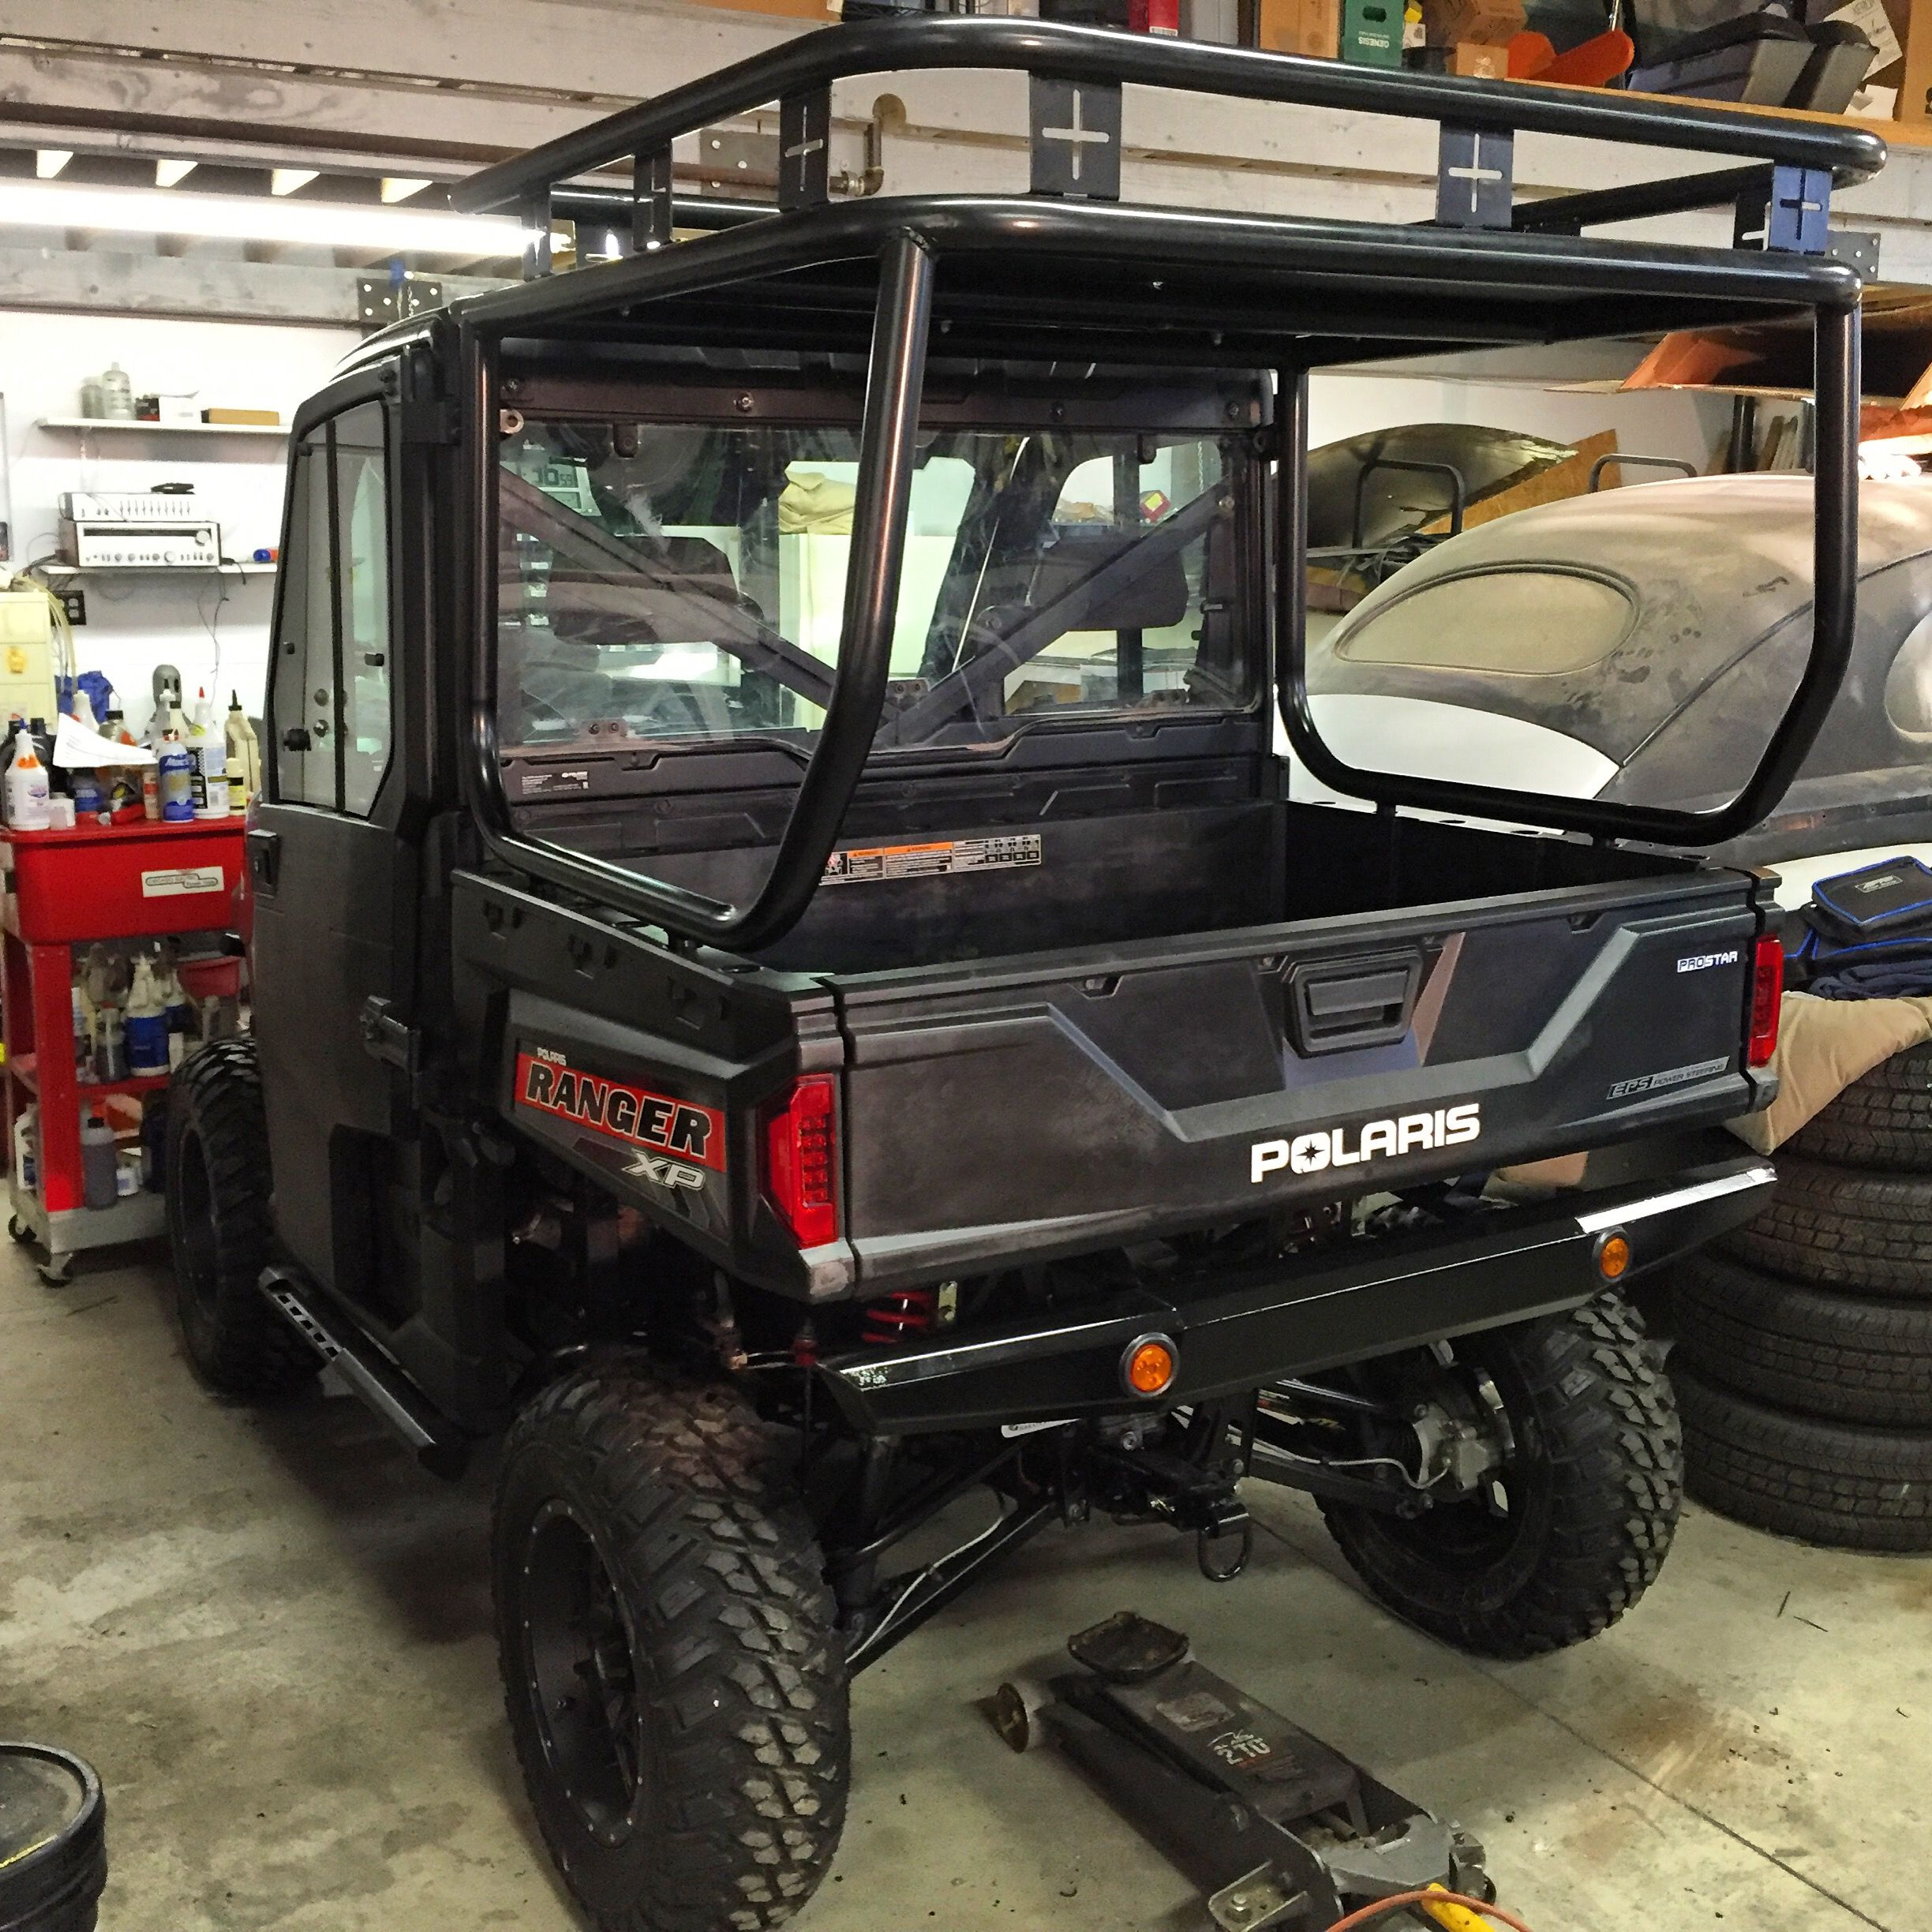 Roll Cage Roof And Safari Rack Installed On A Polaris Ranger 900xp Utv Sidexside Call Darren For Pric Polaris Ranger Polaris Ranger Accessories Roll Cage